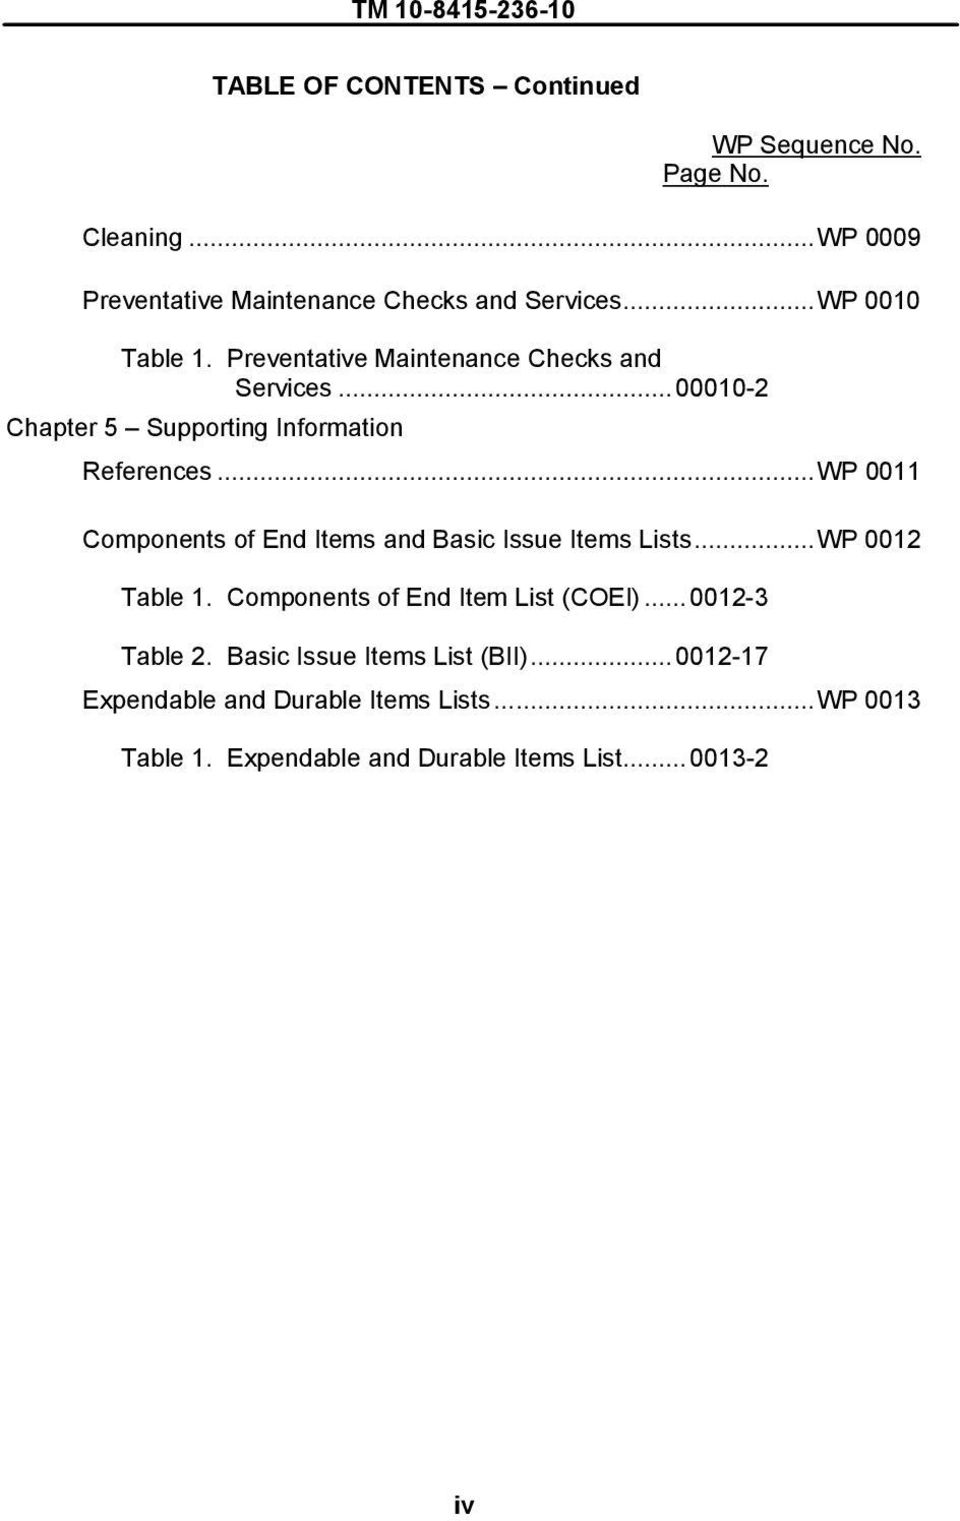 ..WP 0011 Components of End Items and Basic Issue Items Lists...WP 0012 Table 1. Components of End Item List (COEI)...0012-3 Table 2.